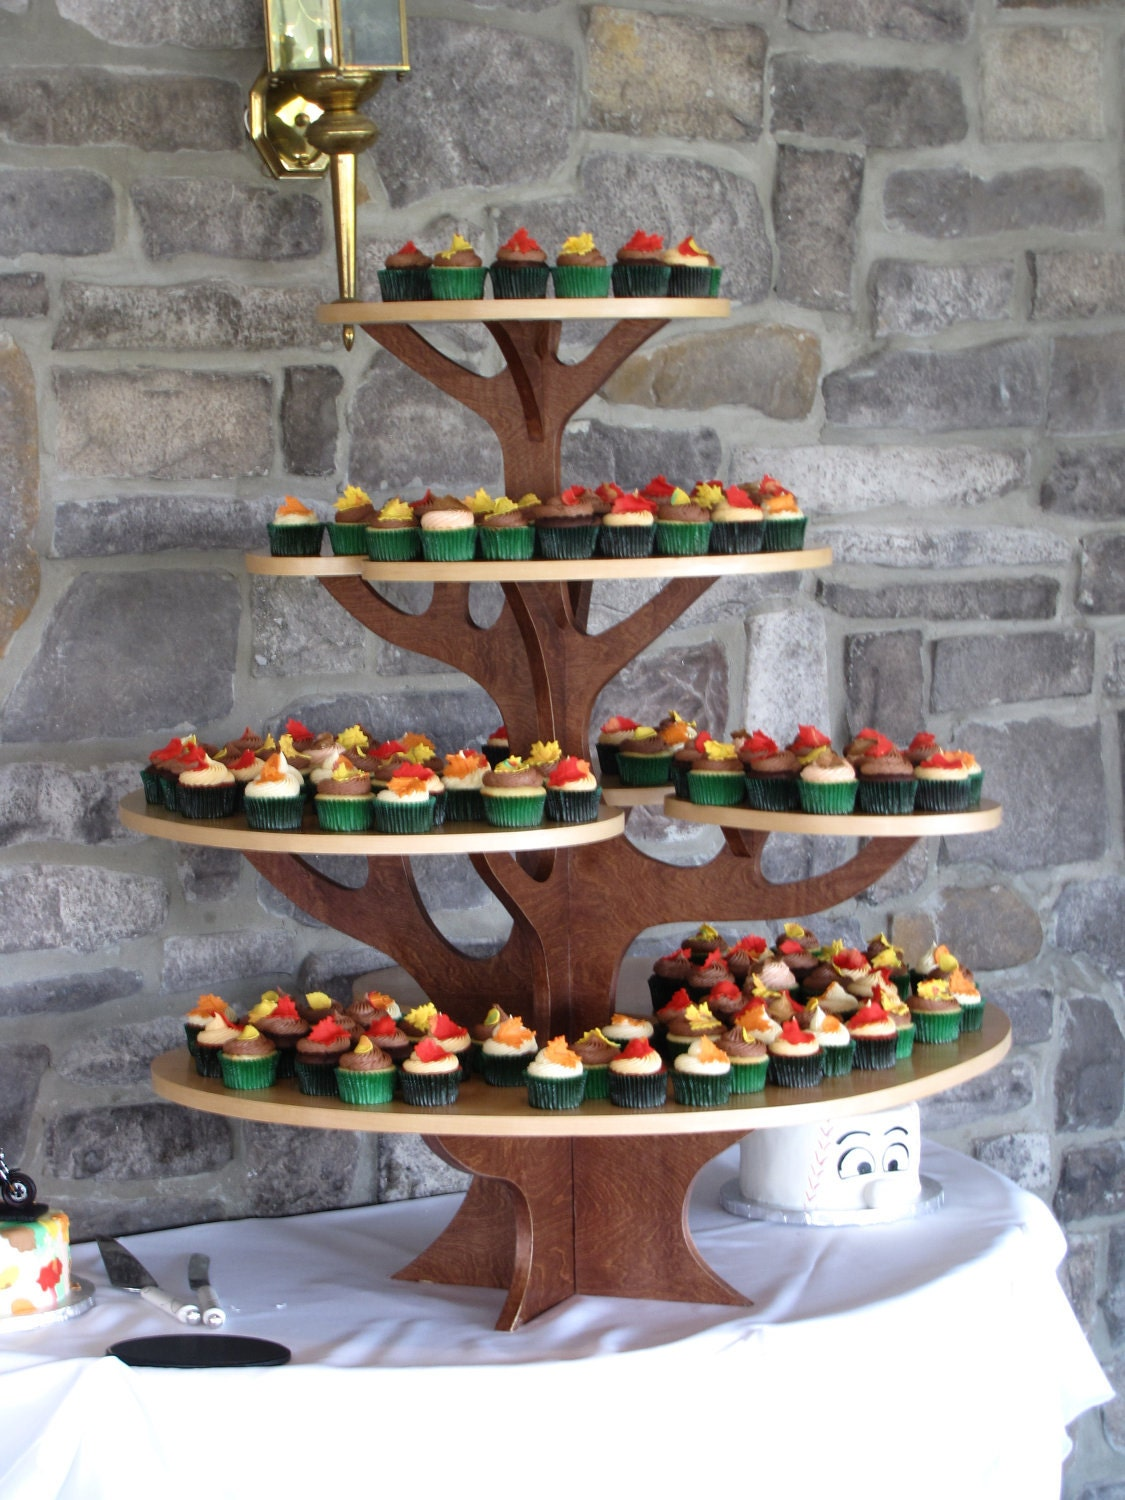 Wooden Cupcake Tree By Joshuabutler On Etsy. Full resolution  portrait, nominally Width 1125 Height 1500 pixels, portrait with #9A7531.